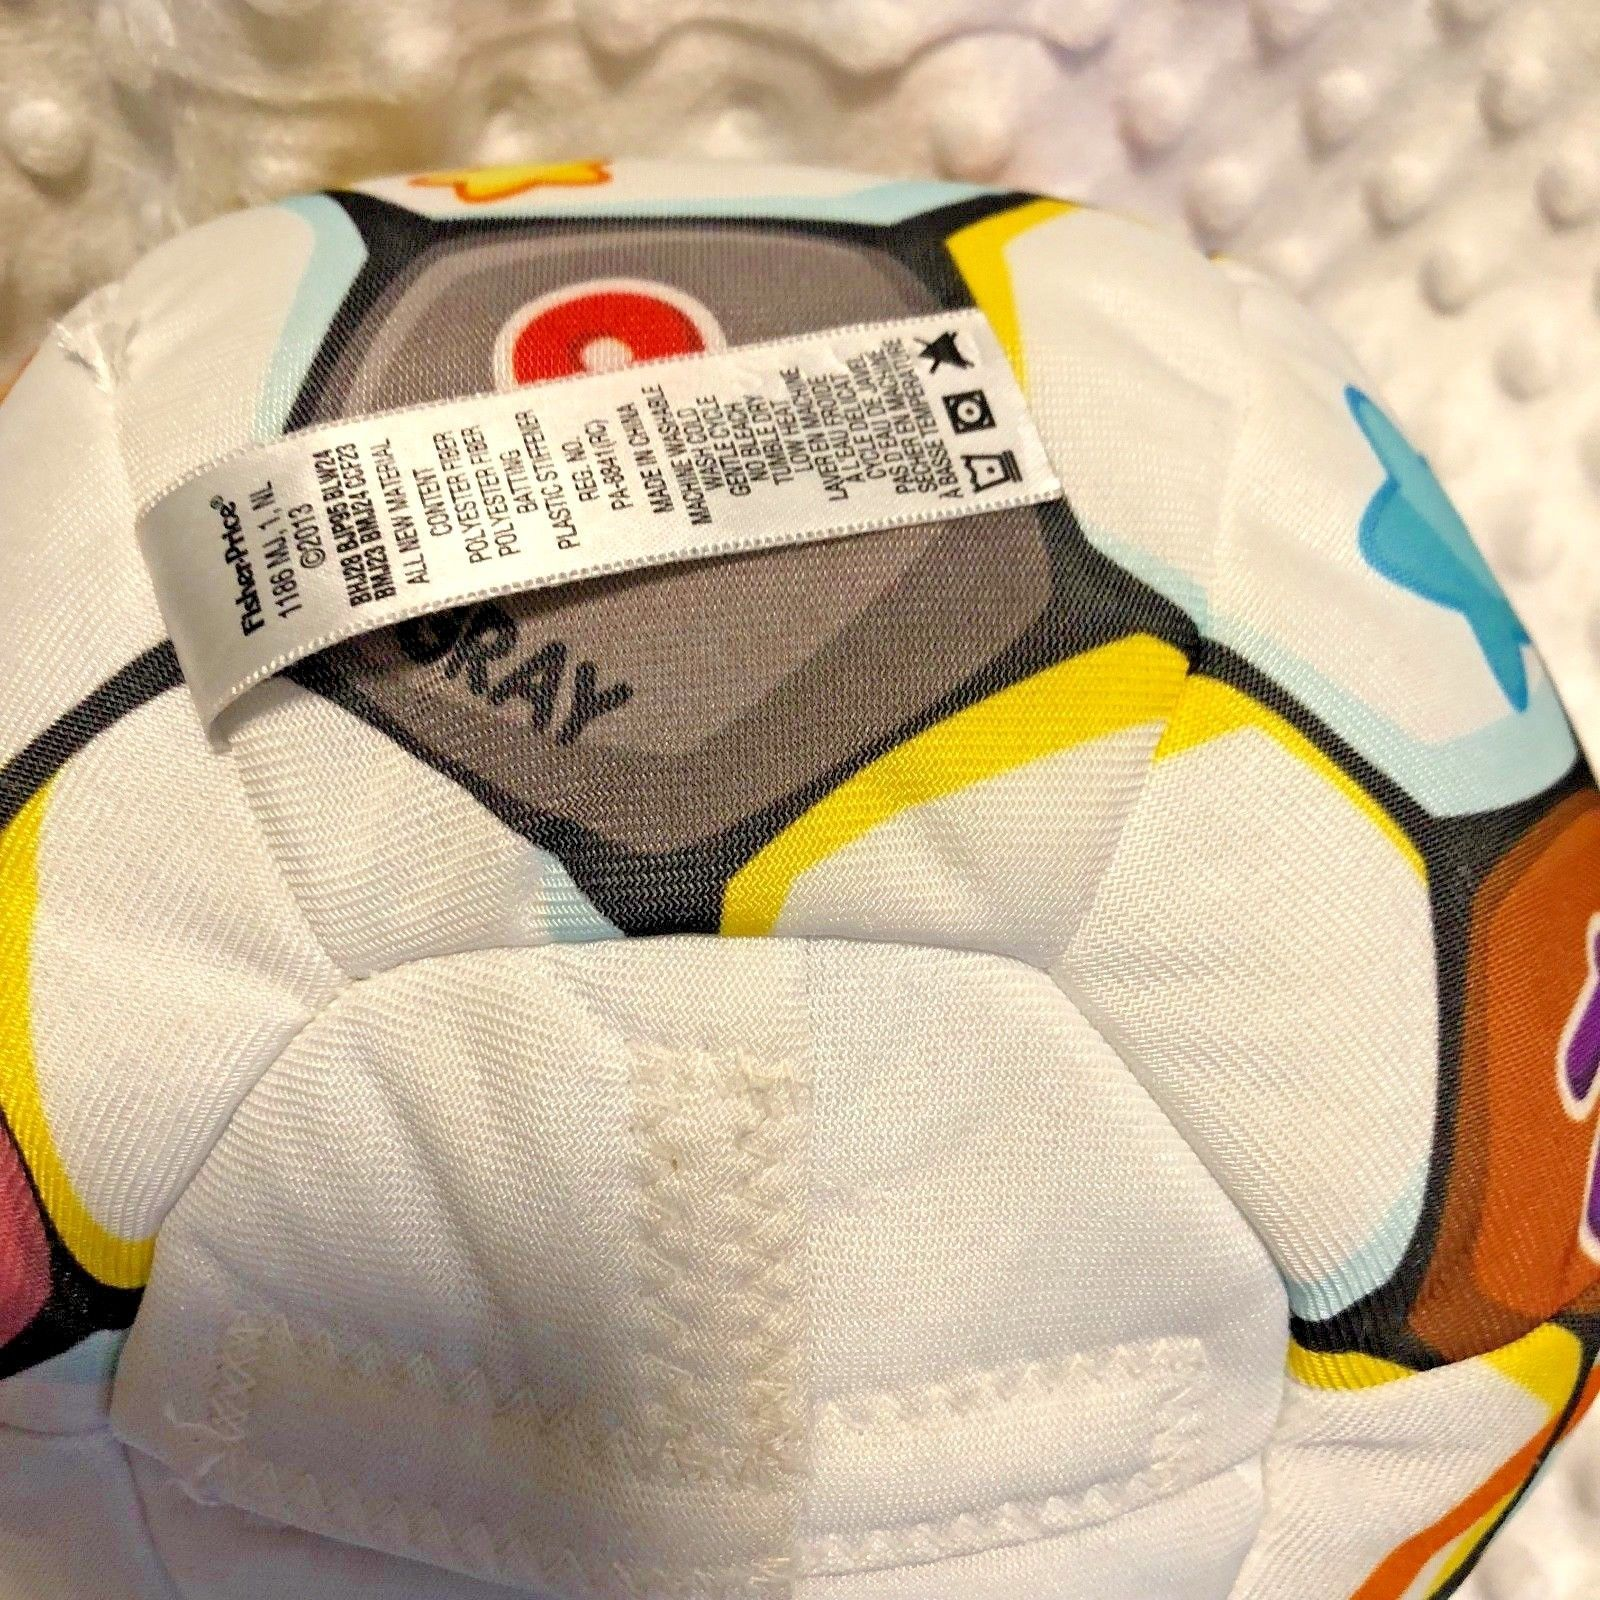 Fisher Price Laugh & Learn Singing Soccer Ball Ages 6 - 36 months White